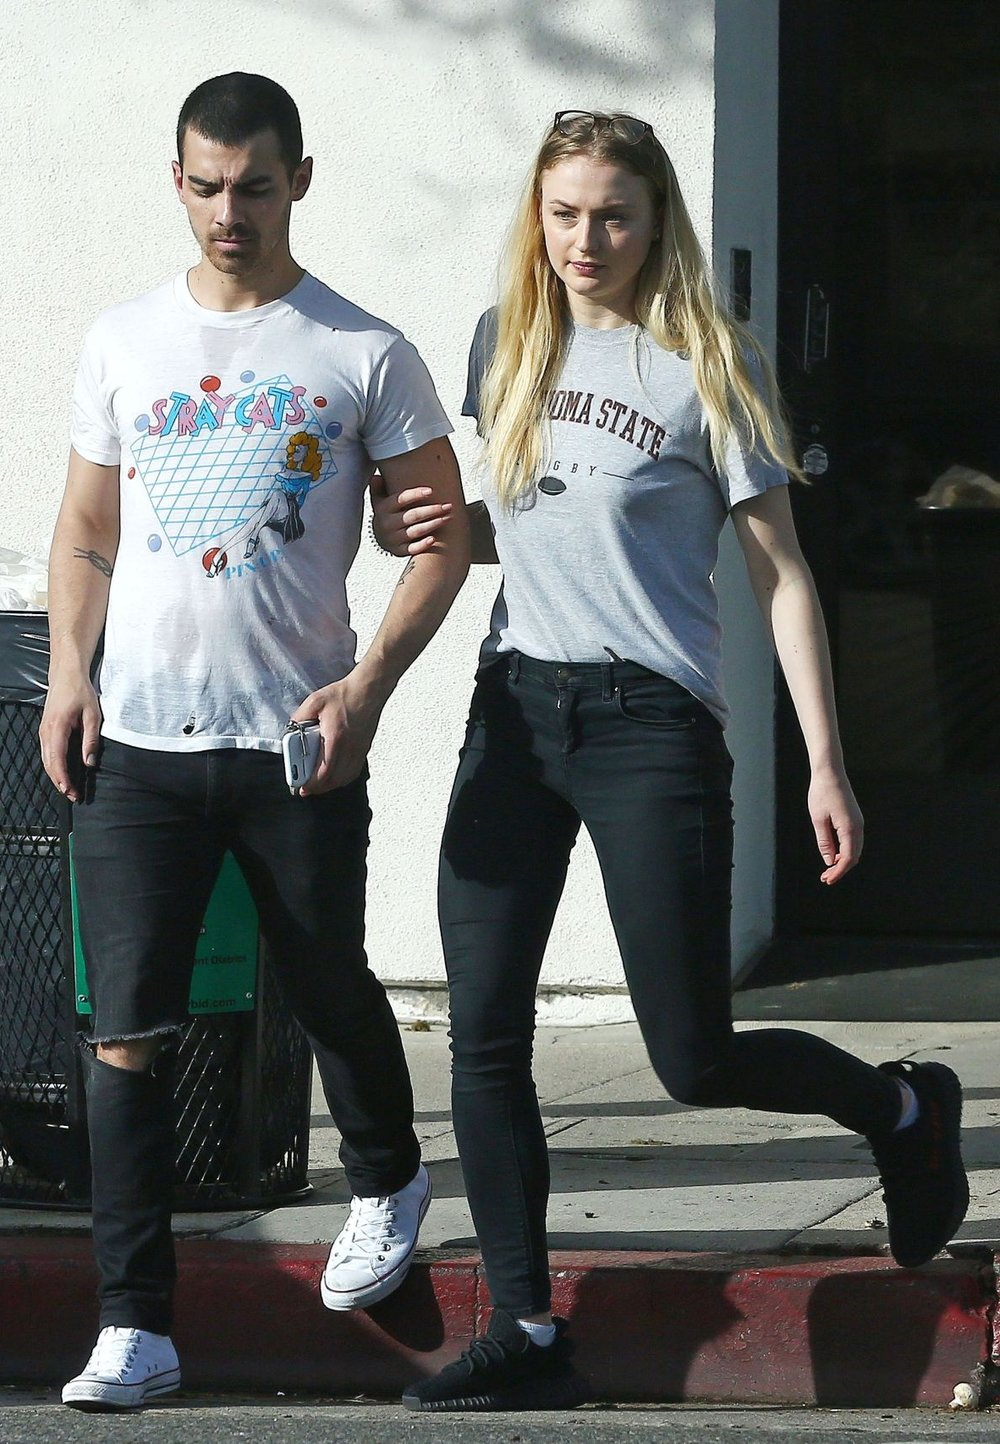 sophie-turner-out-with-joe-jonas-walking-up-and-down-ventura-blvd-in-la-4-2-2017-1.jpg